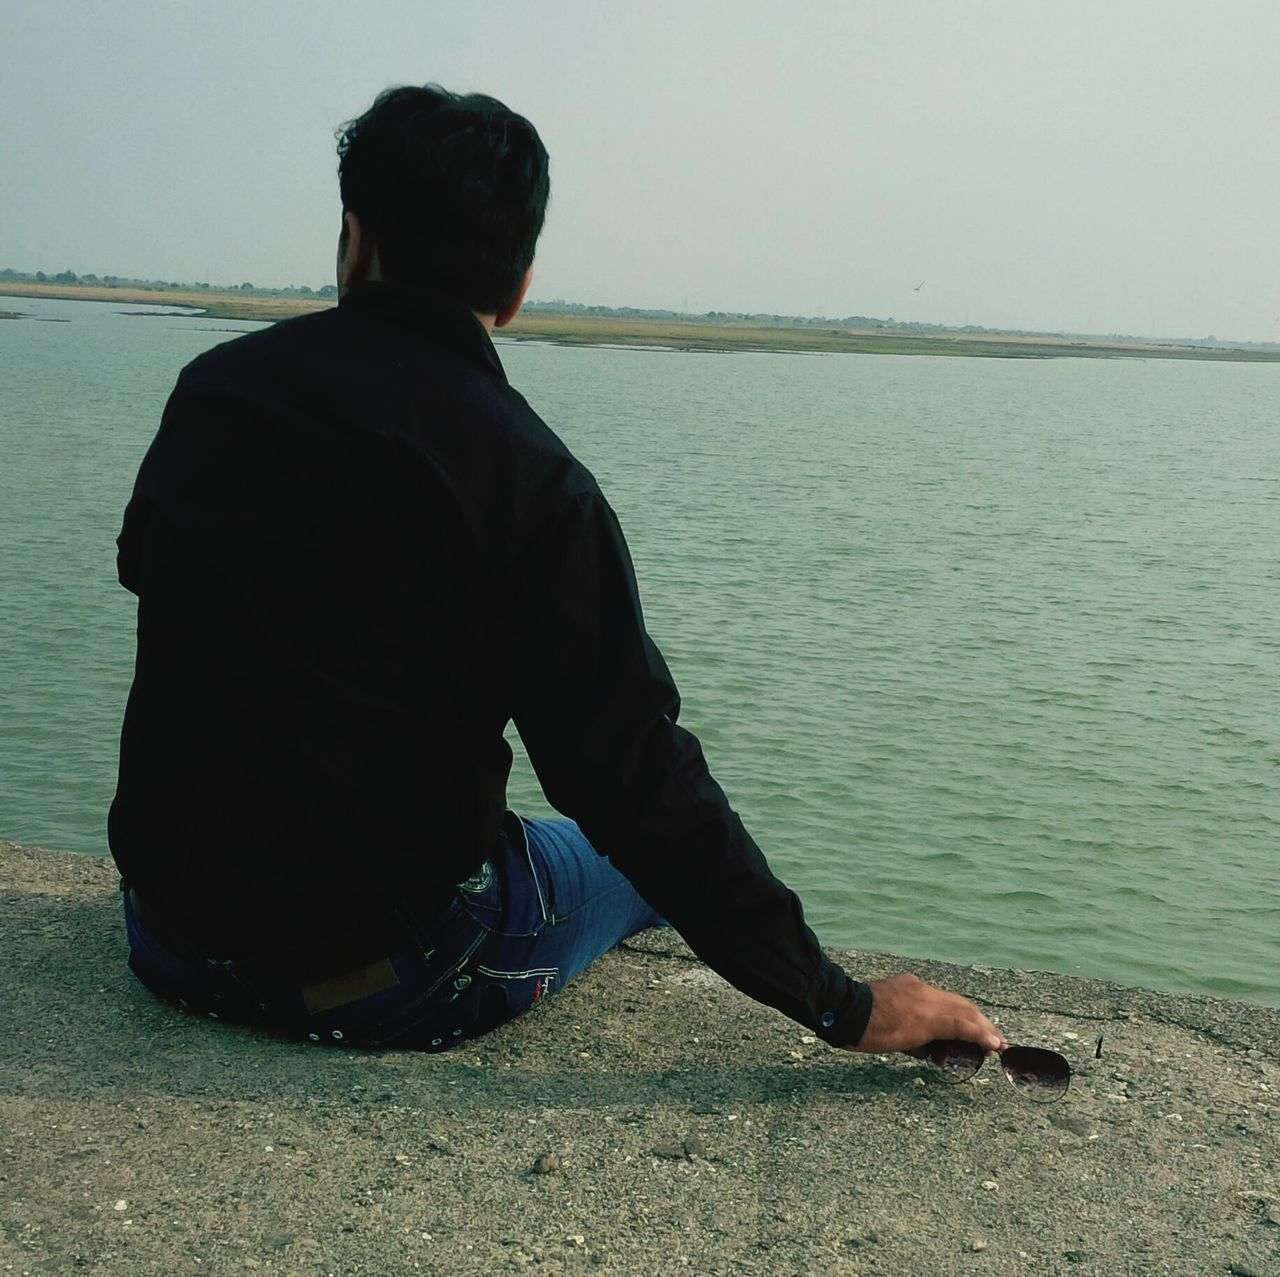 real people, sea, one person, water, rear view, sitting, full length, outdoors, men, leisure activity, standing, horizon over water, casual clothing, lifestyles, nature, day, tranquil scene, weekend activities, vacations, tranquility, beach, clear sky, scenics, beauty in nature, sky, fishing pole, one man only, adult, people